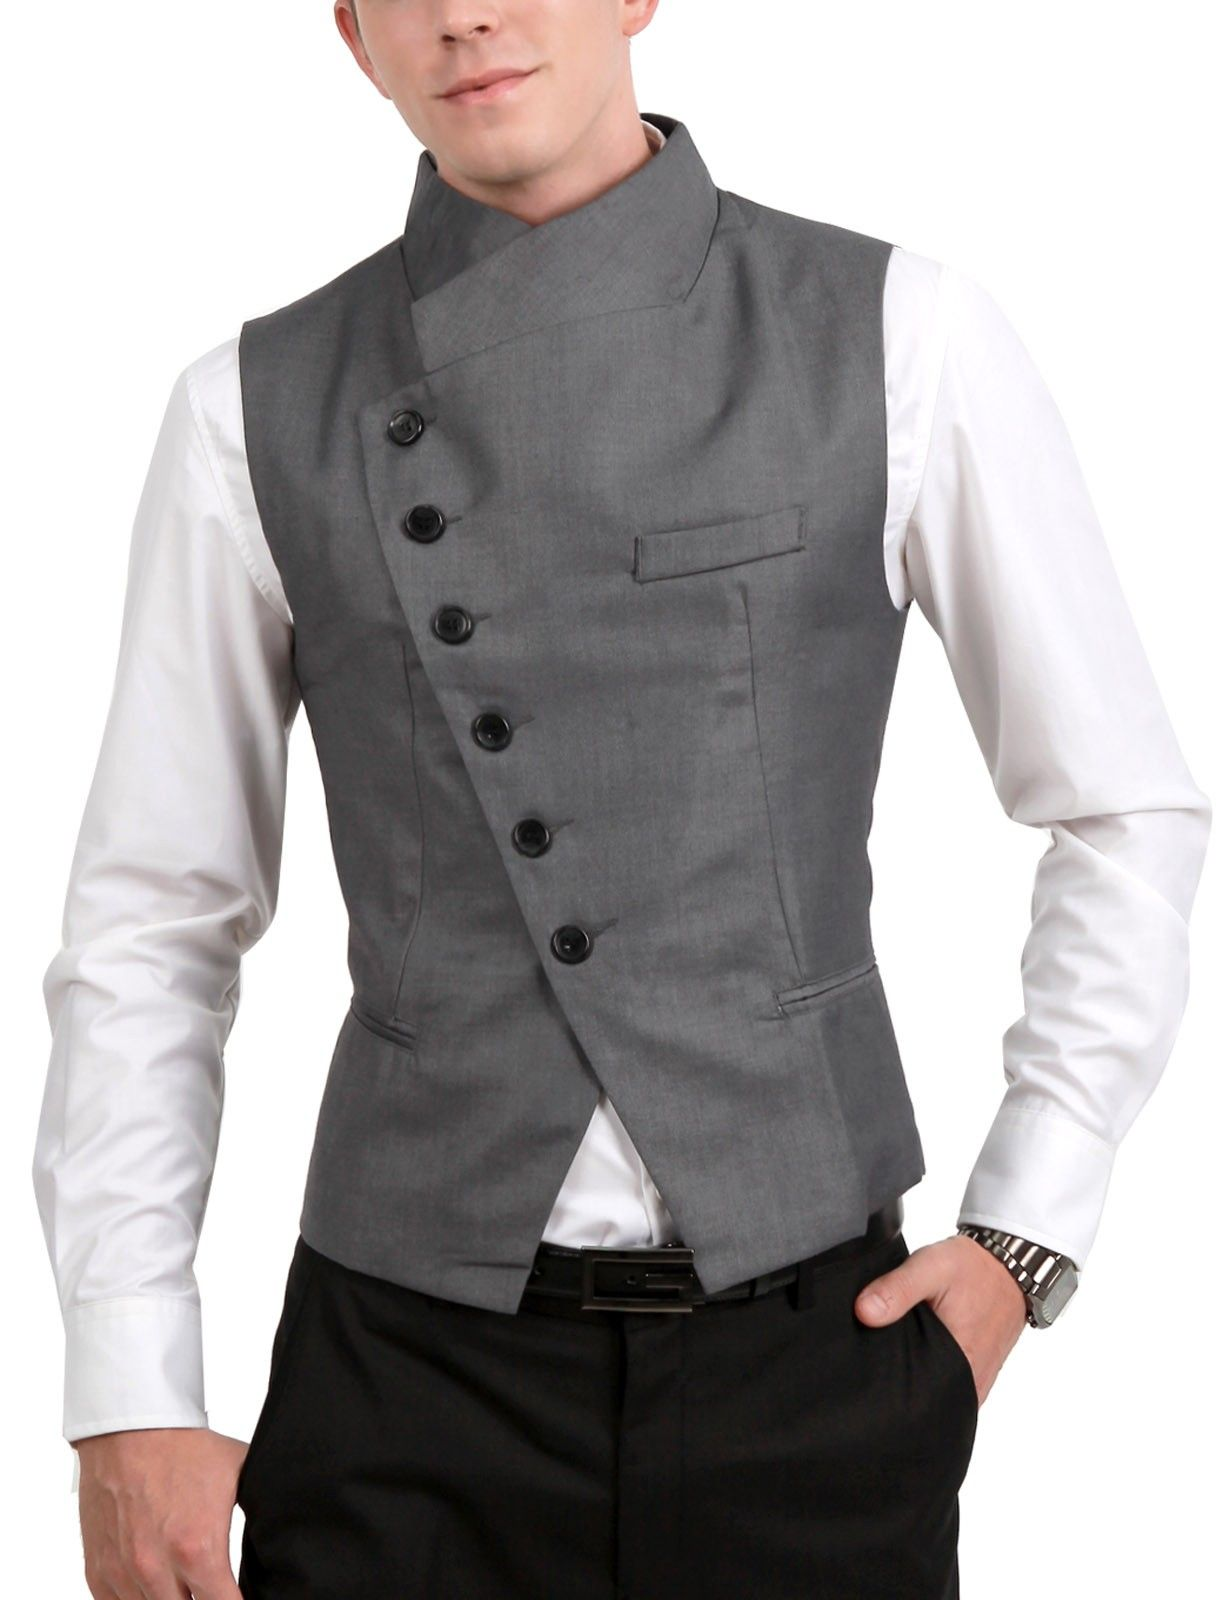 7220613be67 Many men who wear their apparel every day find that their weekend or  evening apparel is extremely deficient.